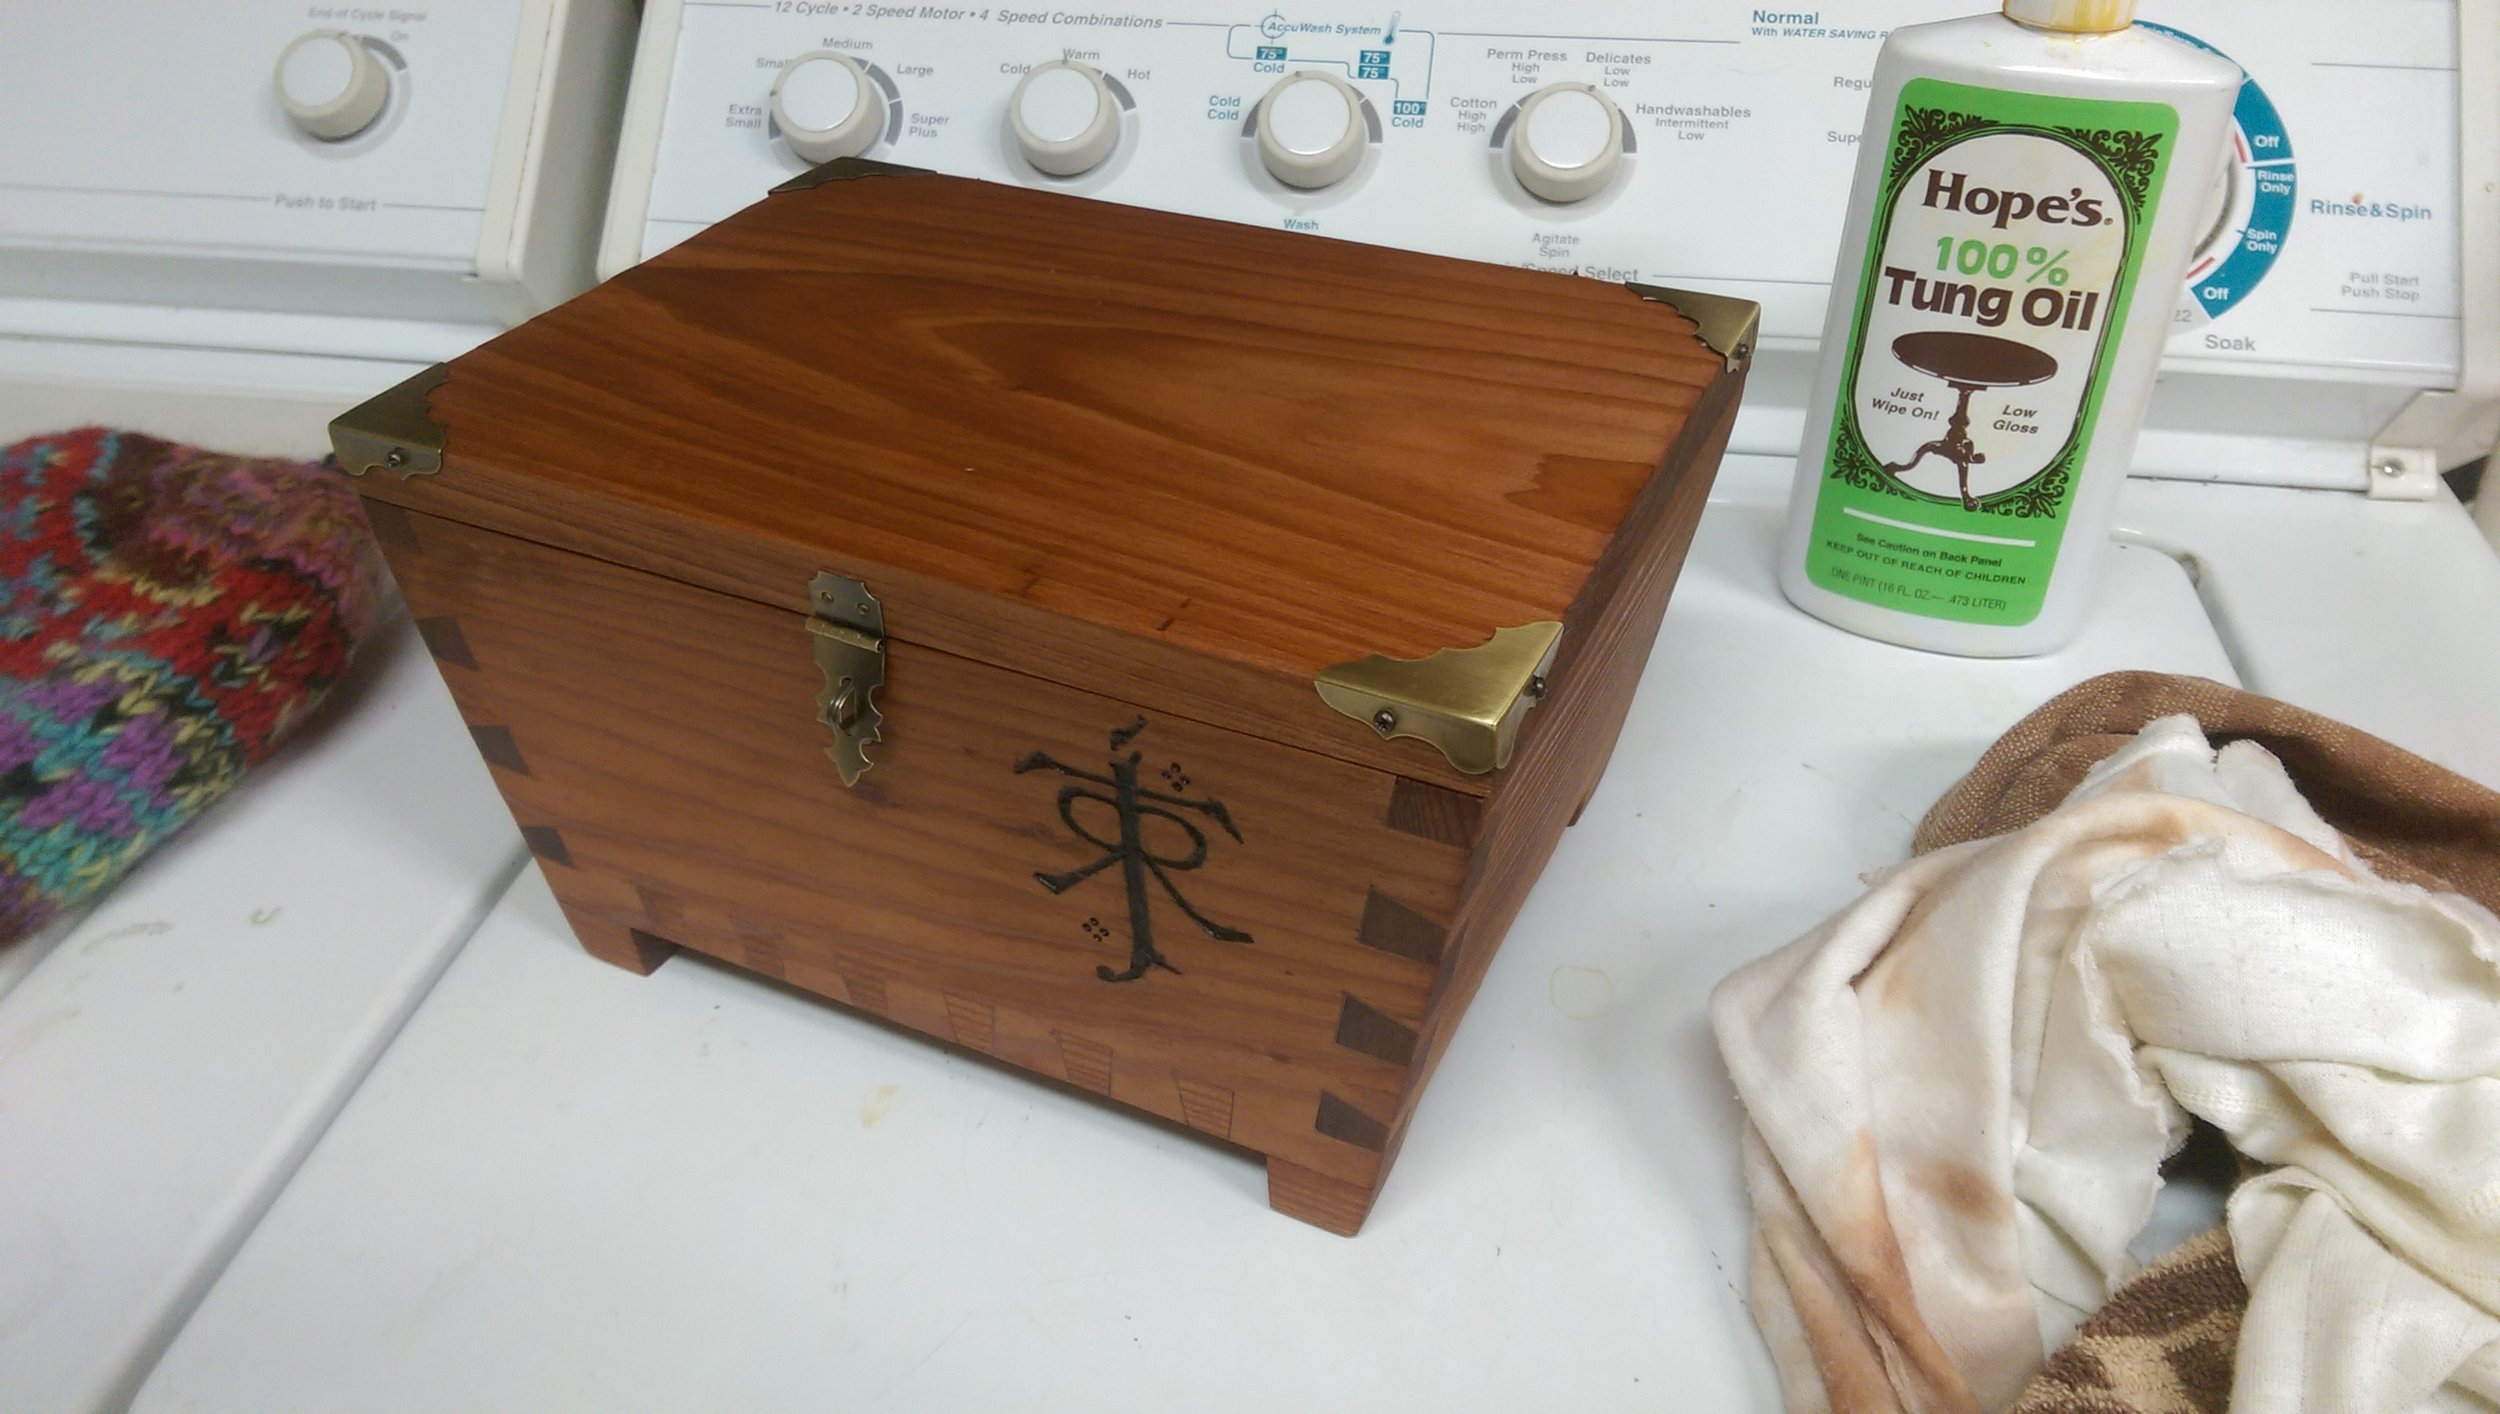 Finally I finished the box with several layers of tung oil. This really brought out the charred emblem and the wood's grain. Definitely the most satisfying part of the build!